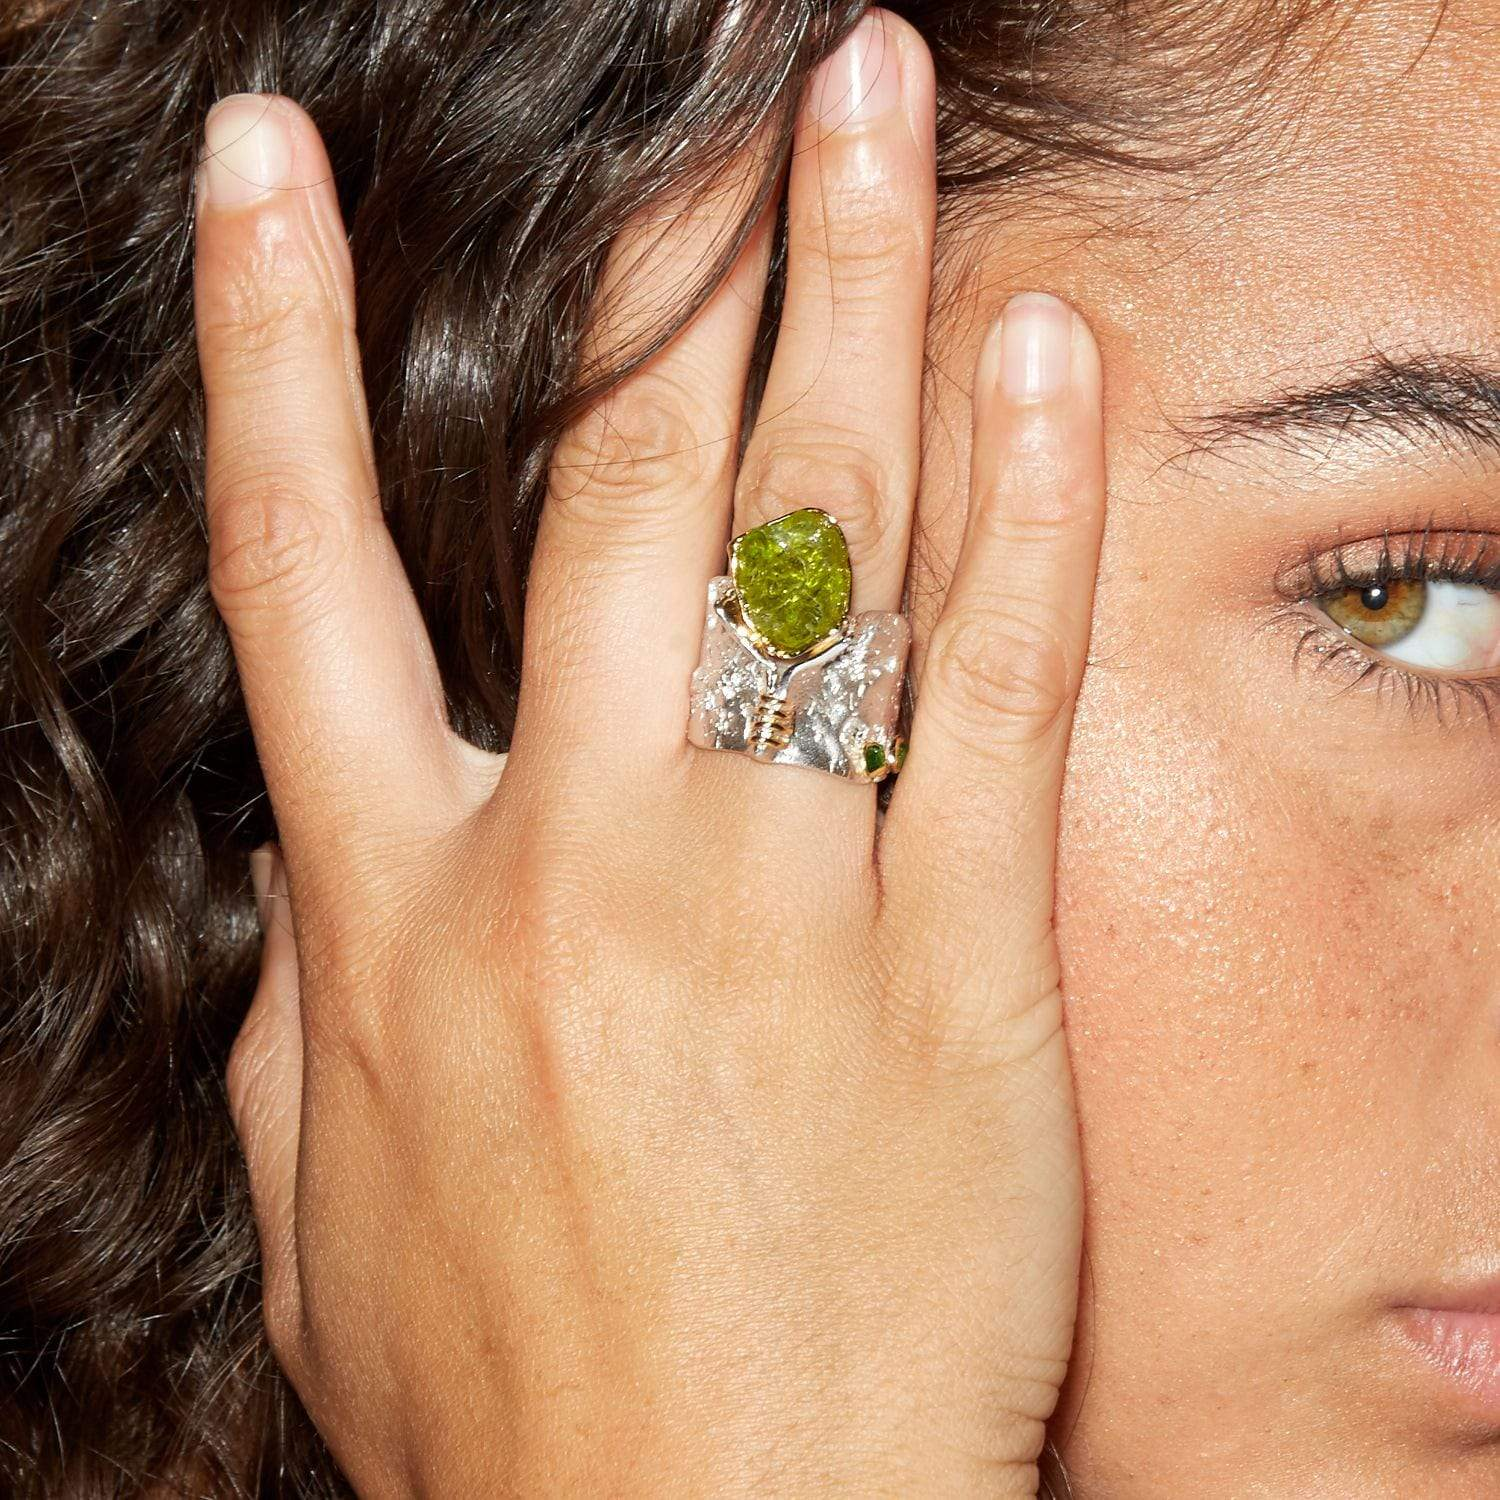 Gytha Ring, Gold, Handmade, Peridot, Rhodium, silver, StoneColor:Green, Style:Statement, Tsavorite, Type:LargeSoloStone Ring